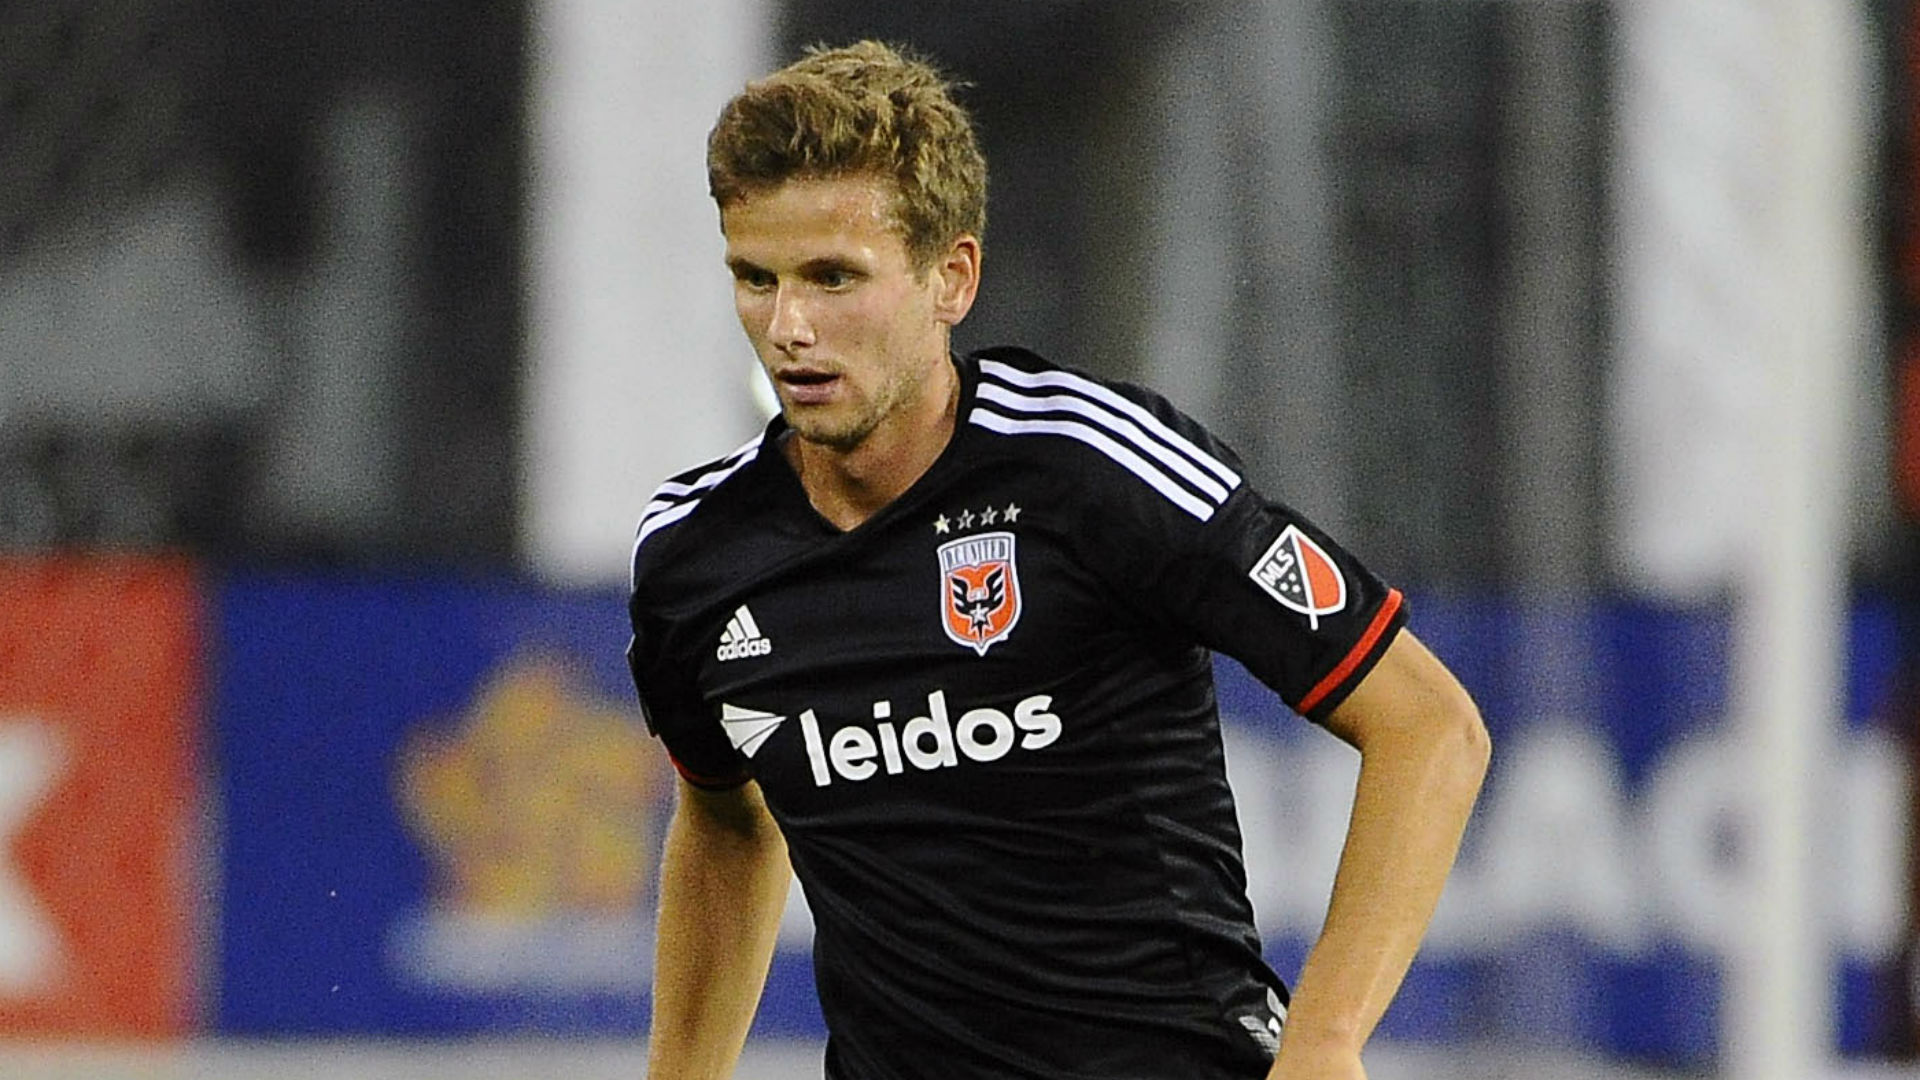 Collin-martin-dc-united-091515_1t6kxxes7o8oh10sw85ivyz2gy